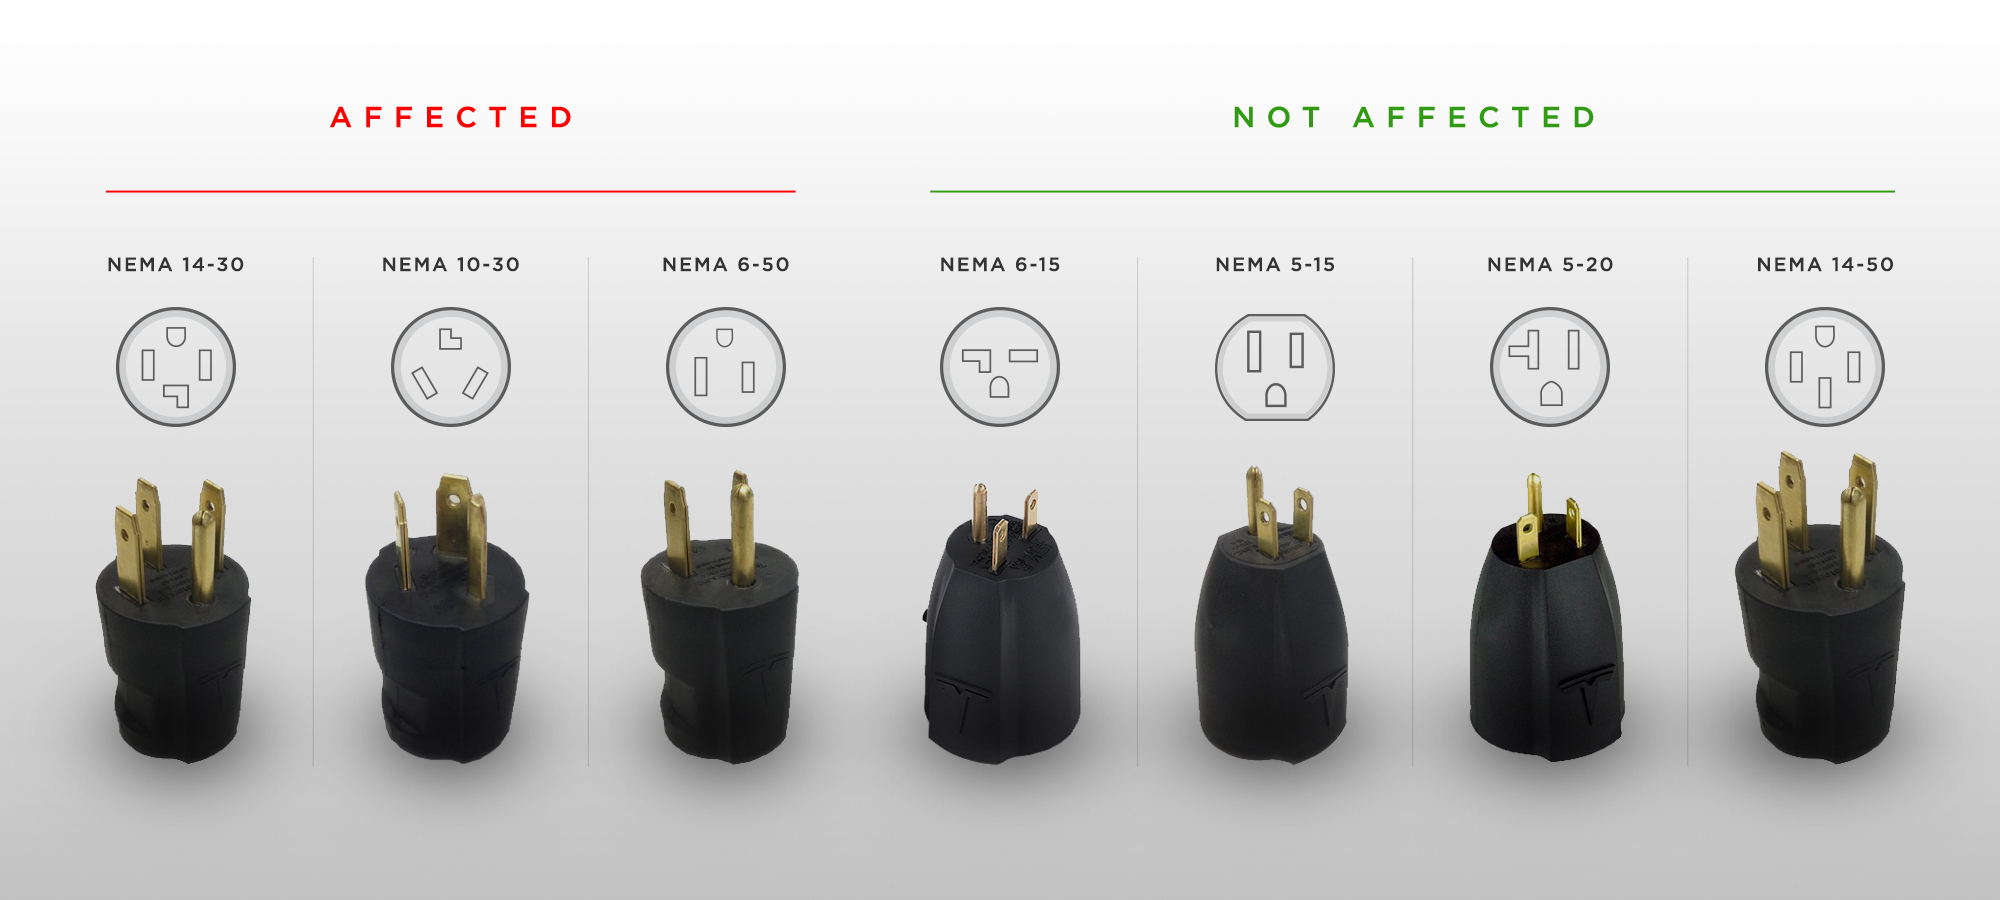 Tesla shared a graphic that shows which adapters are and are not affected by the recall.